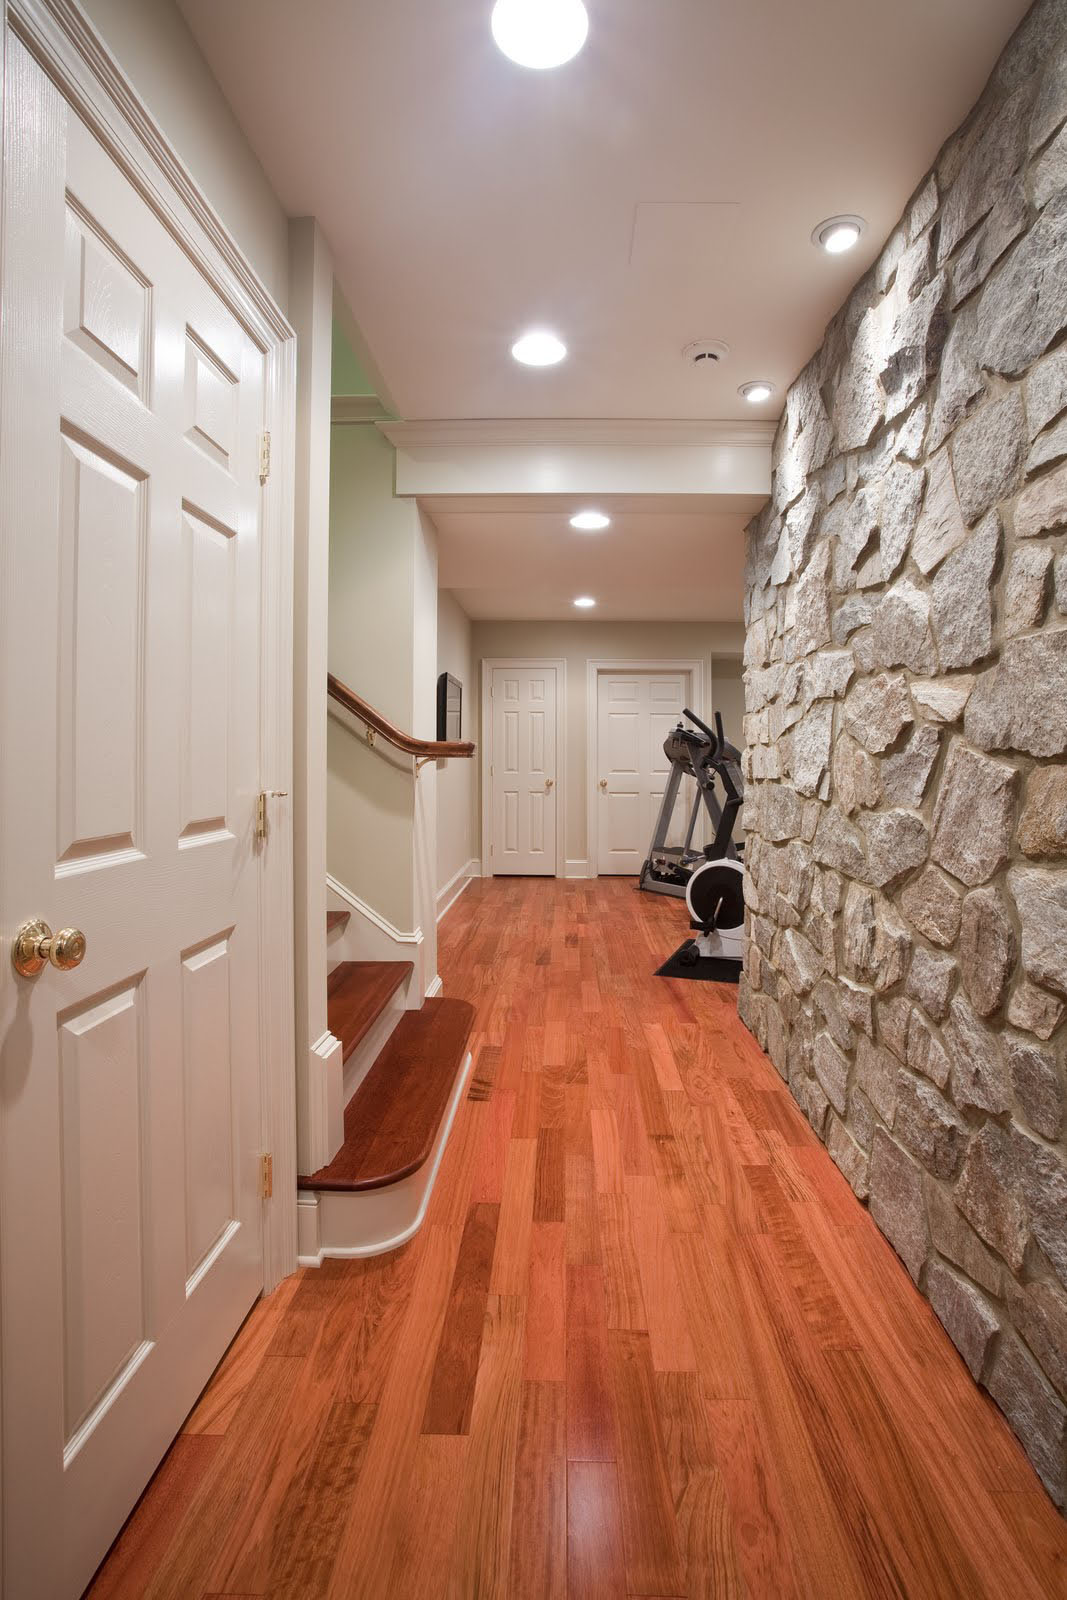 kitchen cabinets houston area cooking oil container supplies basement renovation with rustic stone walls | idesignarch ...